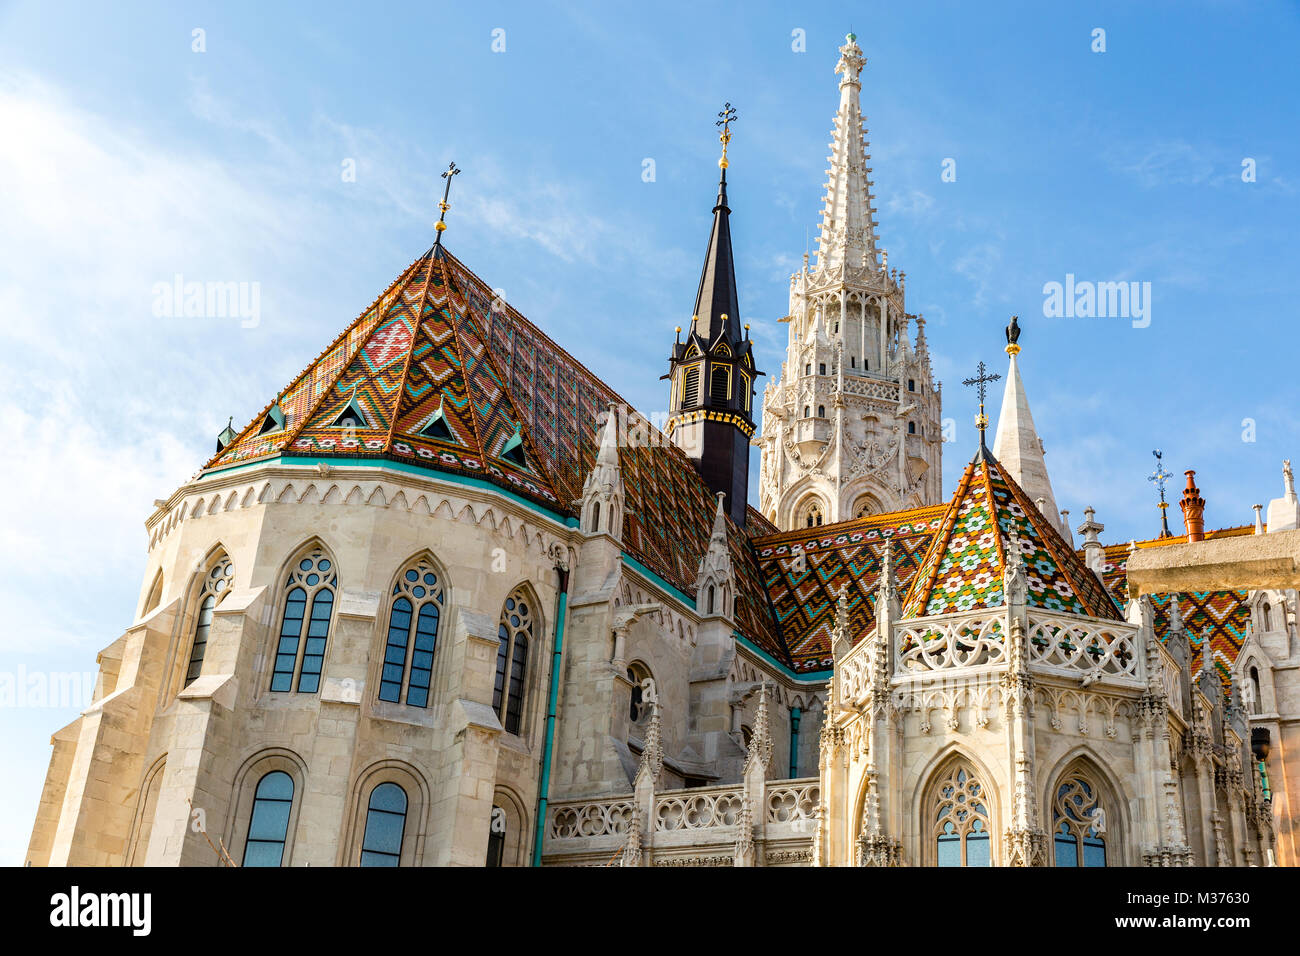 Matthias Church, Roman Catholic church located in Budapest Hungary in front of the Fishermans Bastion at the heart Stock Photo